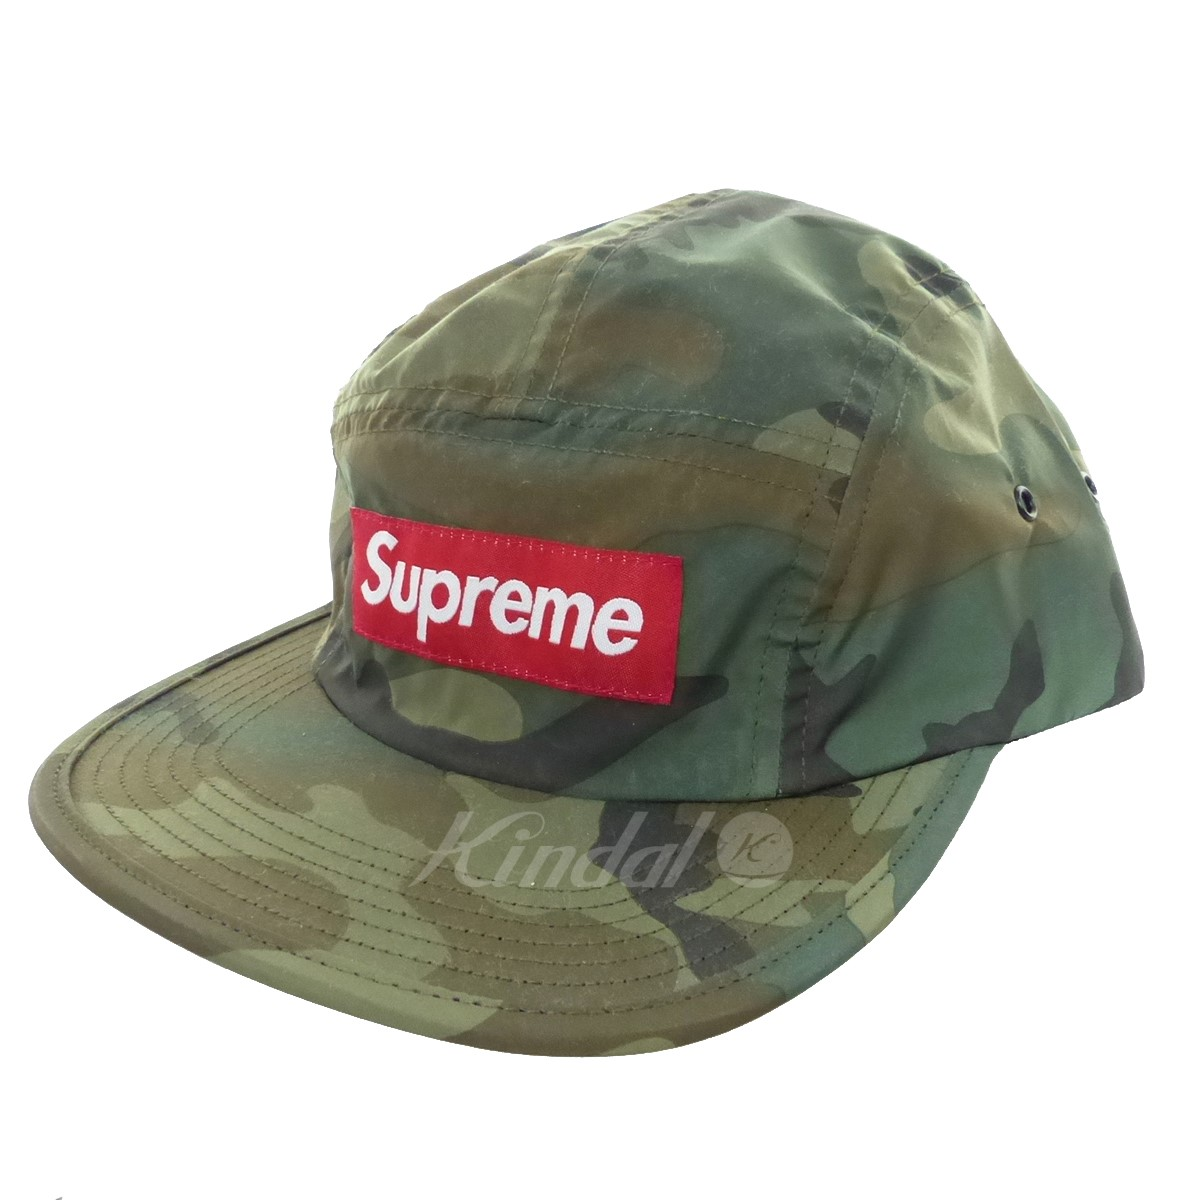 【中古】SUPREME Reflective Camo Camp Cap キャンプキャップ 2018A/W 【送料無料】 【217296】 【KIND1641】